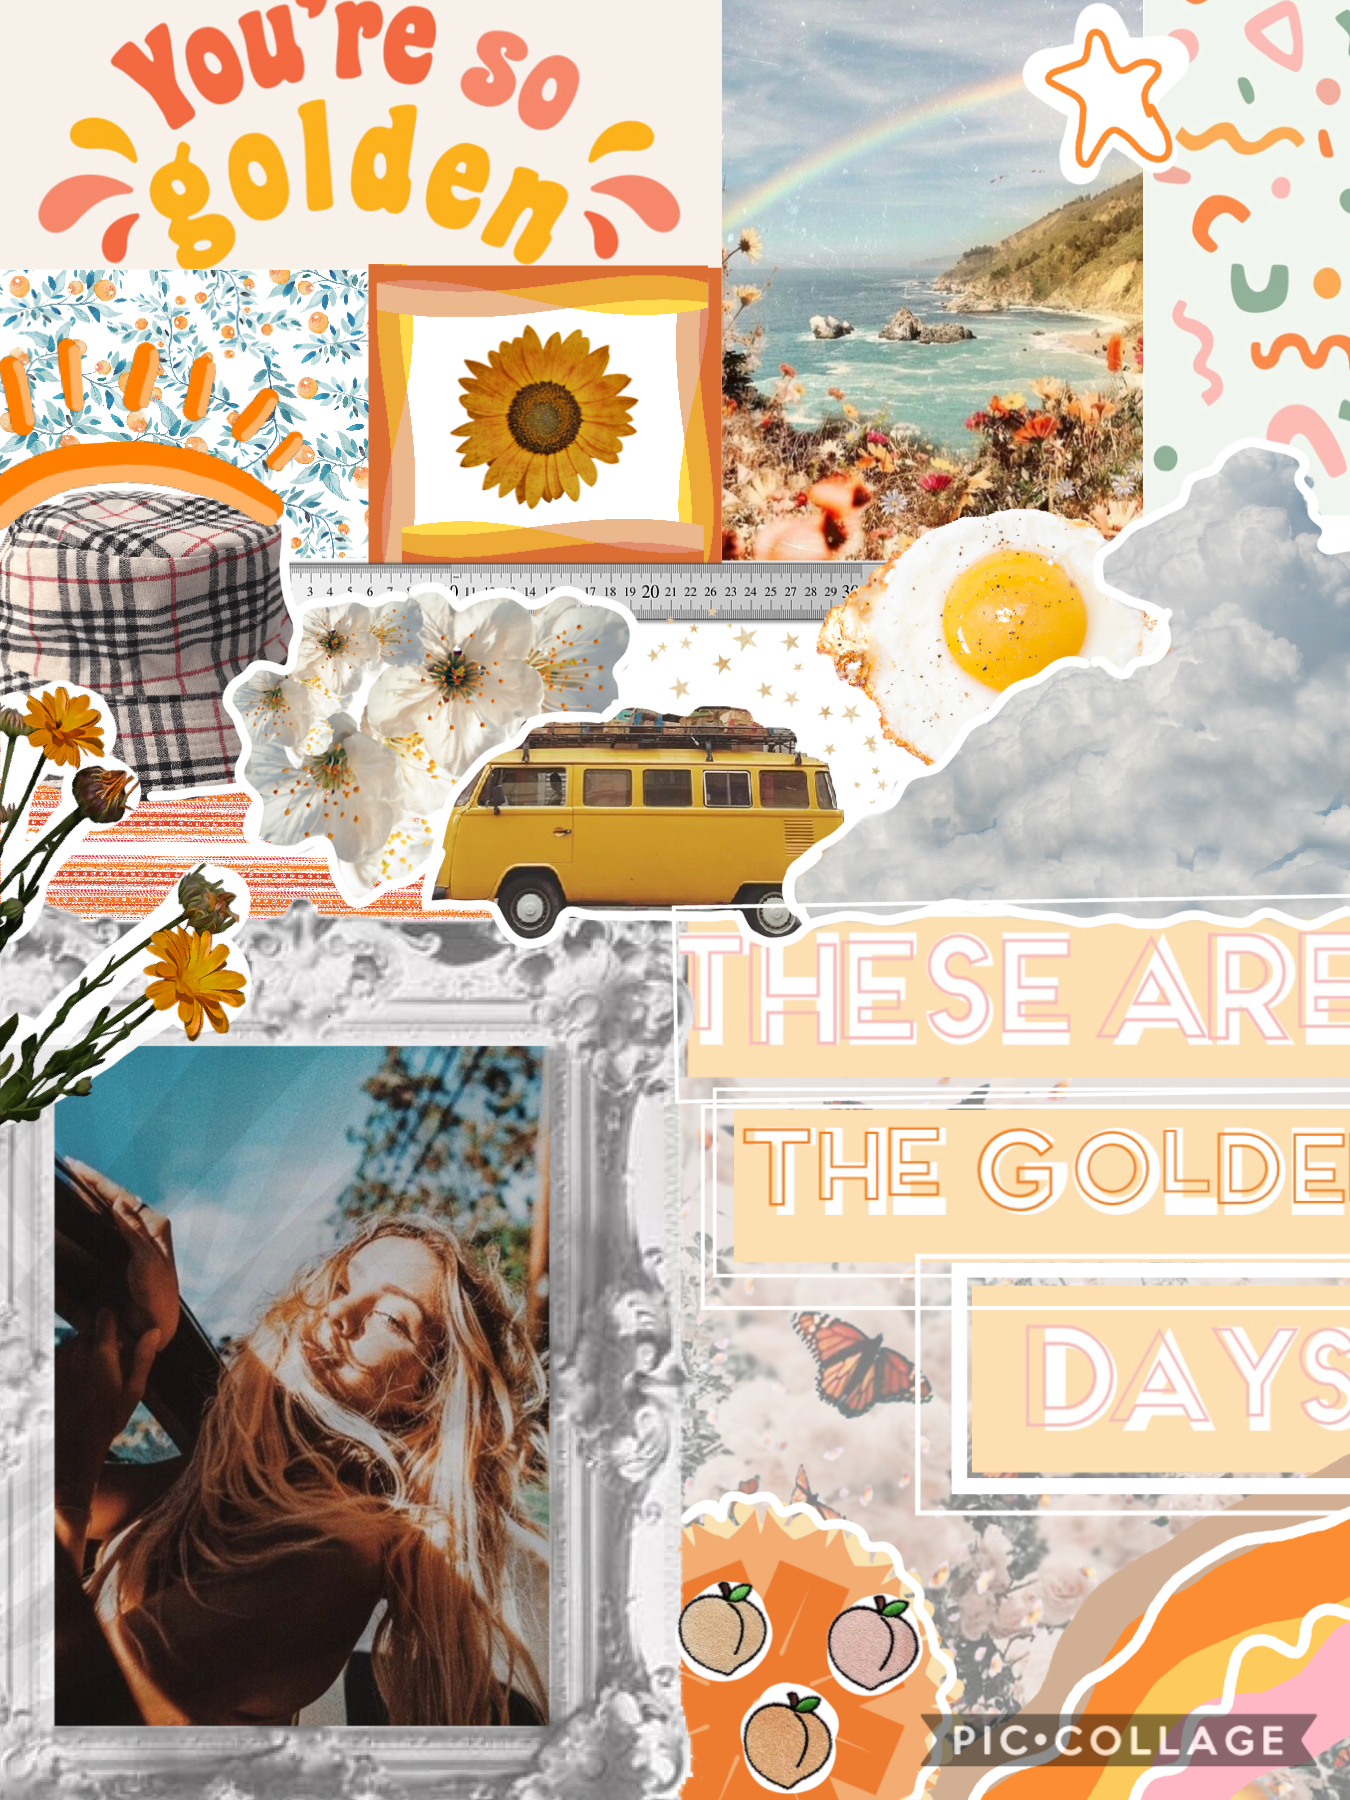 🍌tap me 🍌 Thankyou so much PicCollage for my 7th feature on the spring contest!! I entered an old collage that I posted on my acount a little while ago. Anyways hope you like this collage, I quite like how it turned out!☺️💕